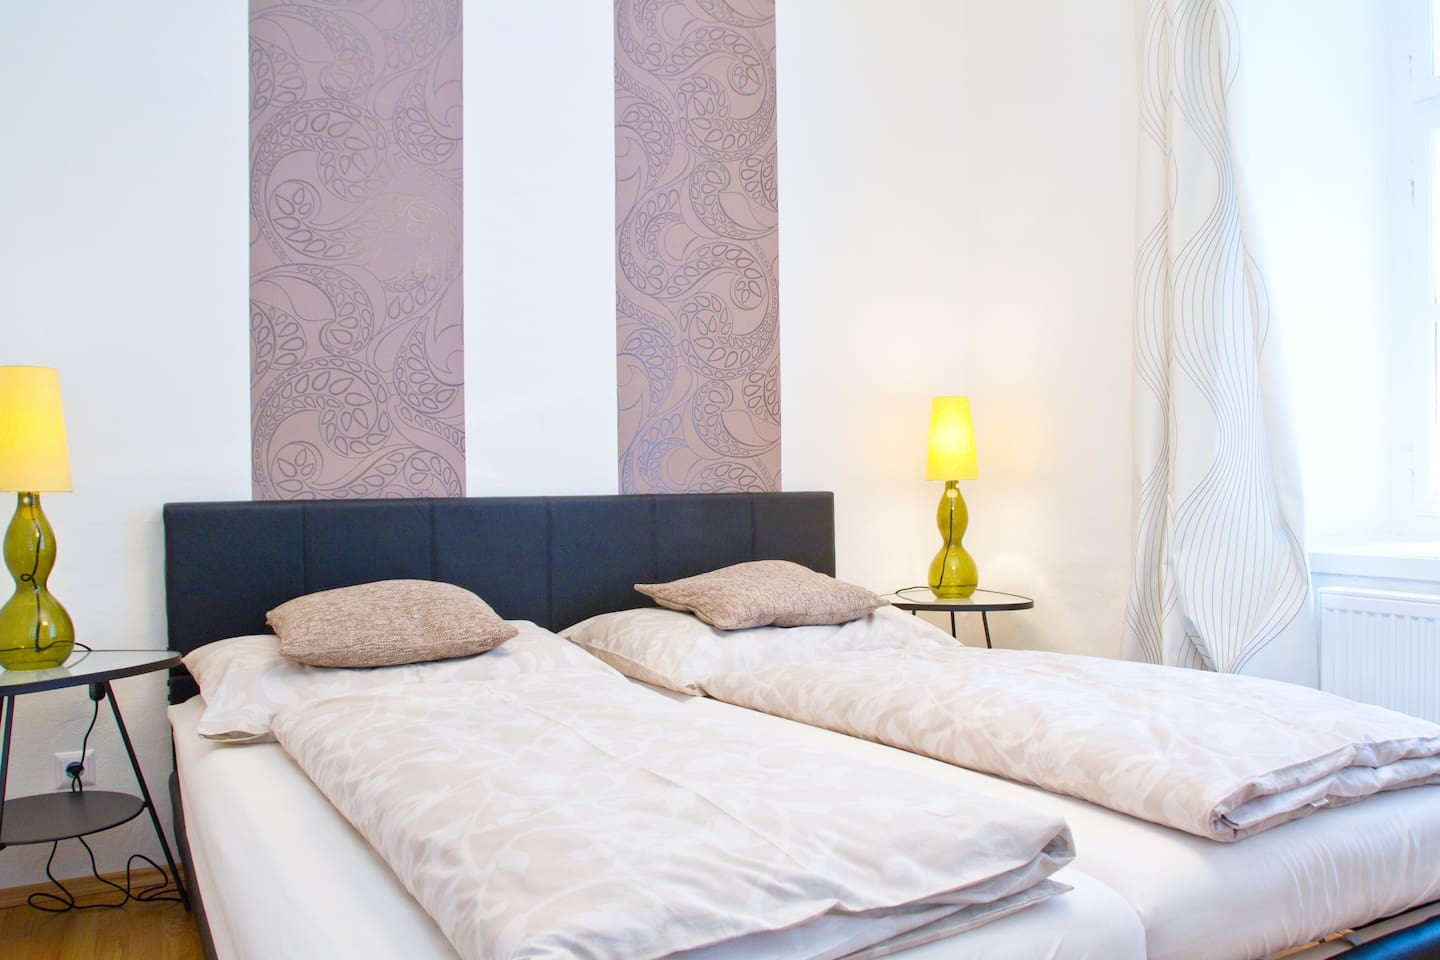 Welcome in Graz to Minihotel room 3